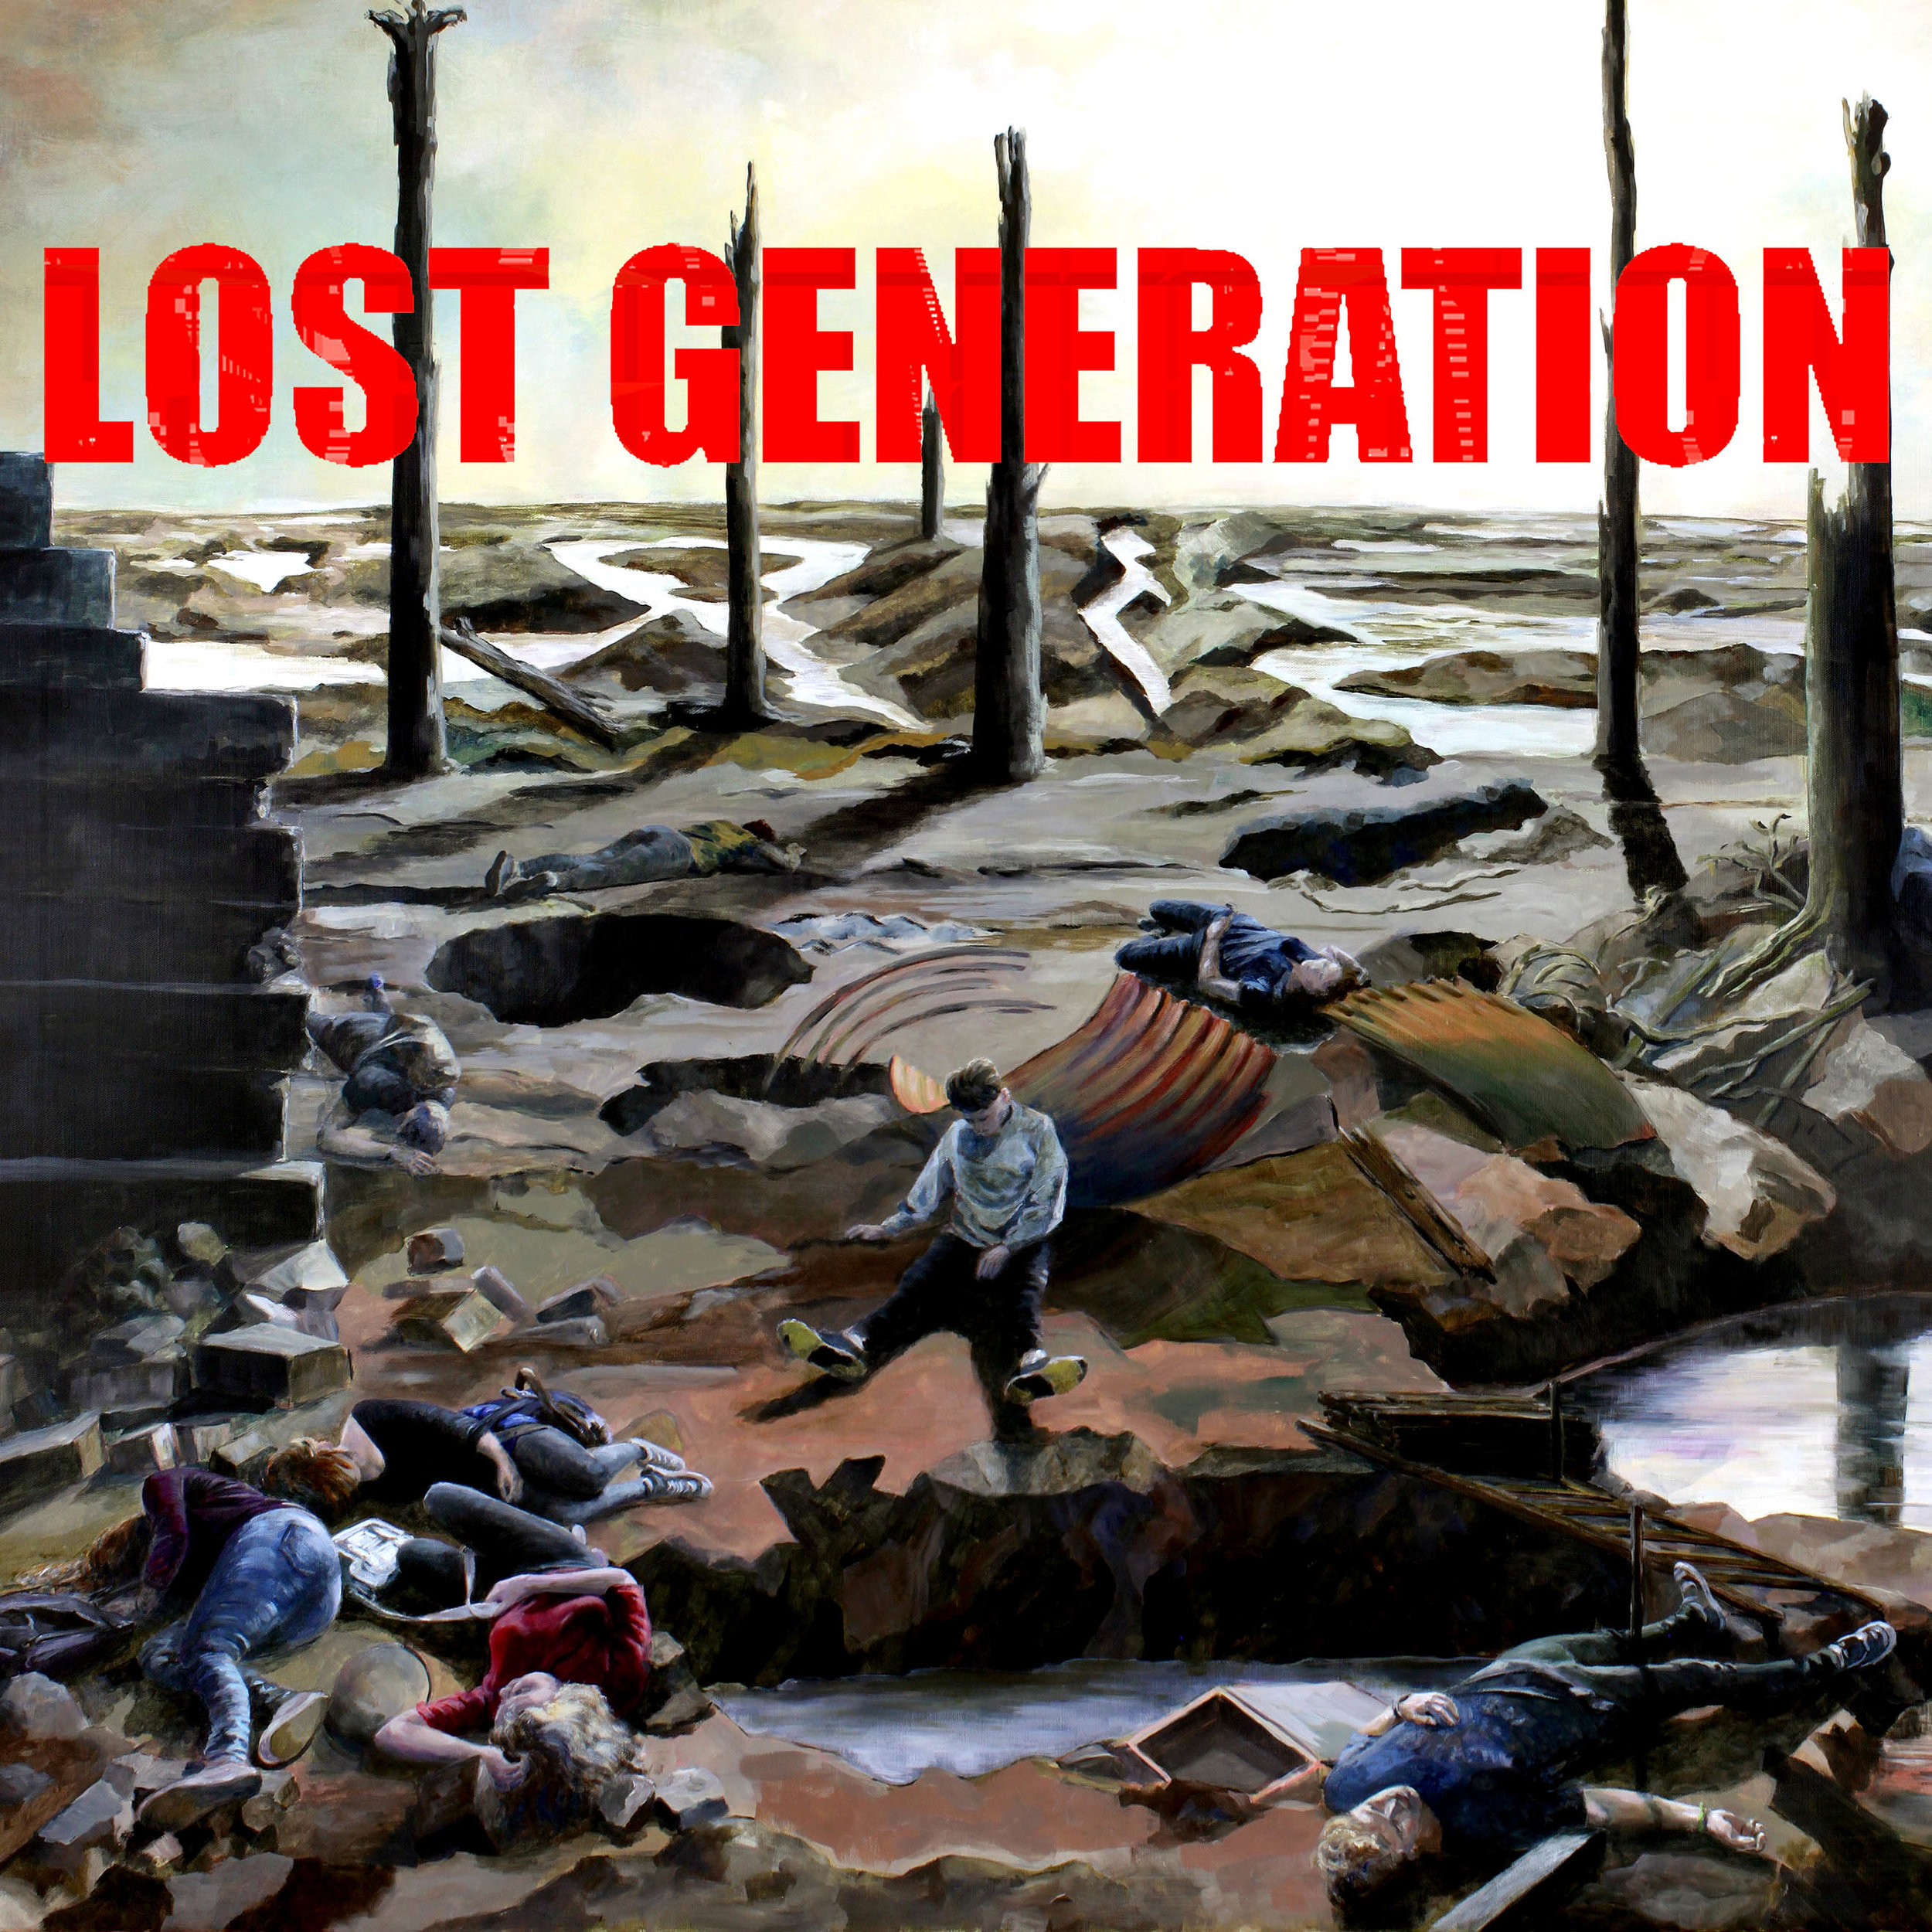 LOST GENERATION PROJECT